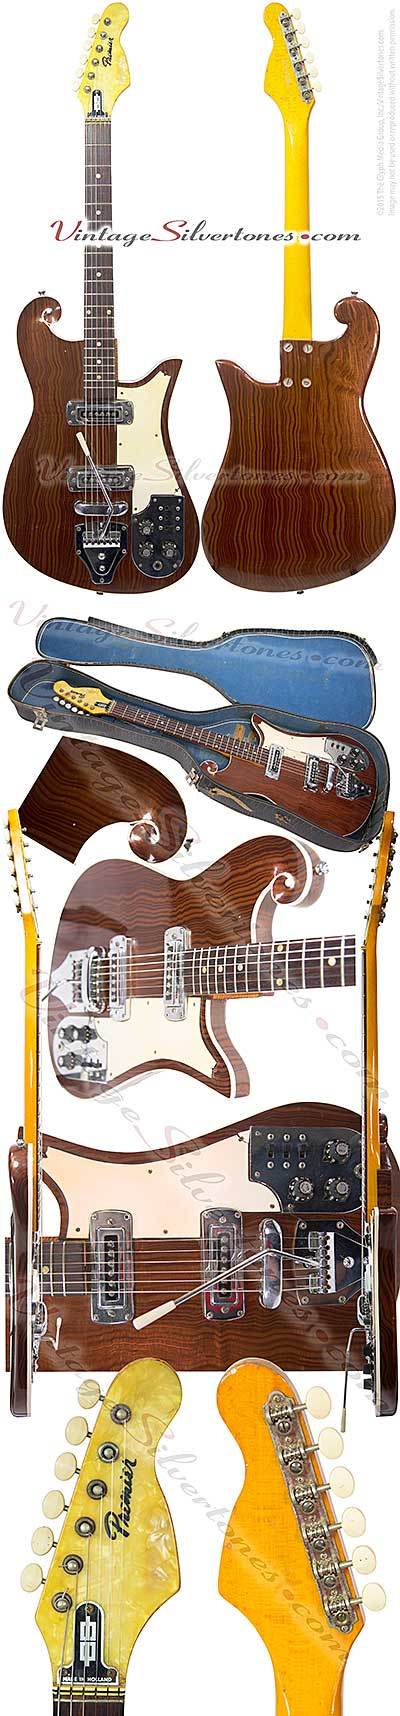 Multivox Premier, scroll, burl walnut finish, double pickup, electric guitar, solid body, ivoroid binding, made in 1966